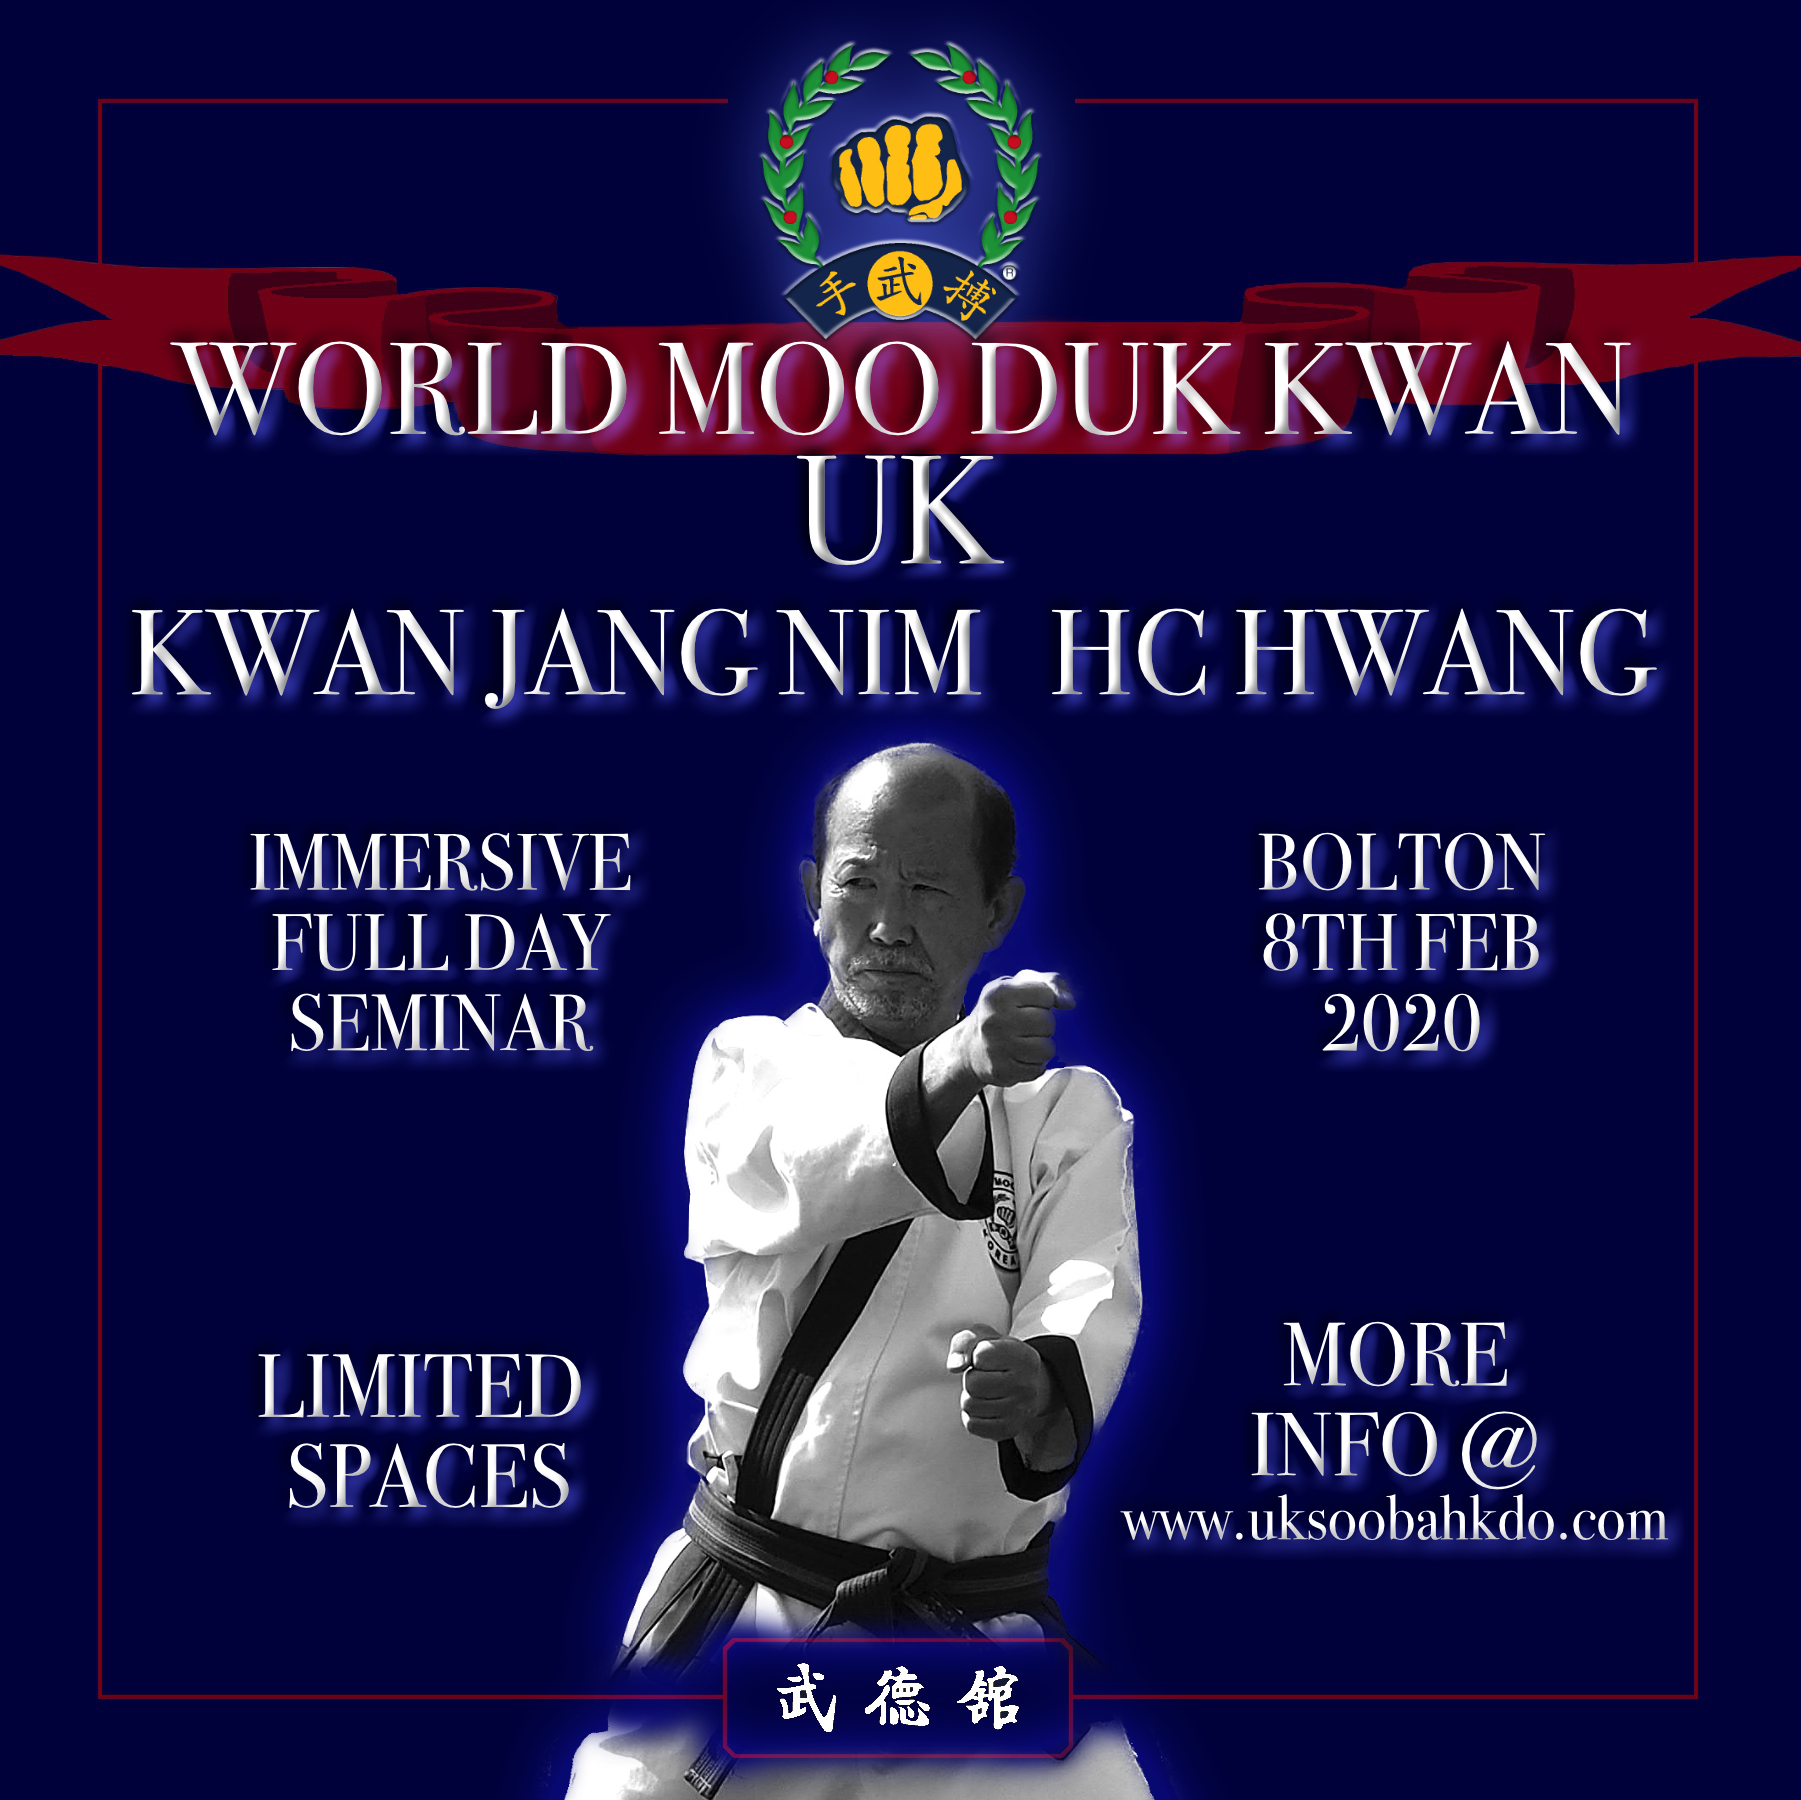 UK World Moo Duk Kwan KJN Seminar